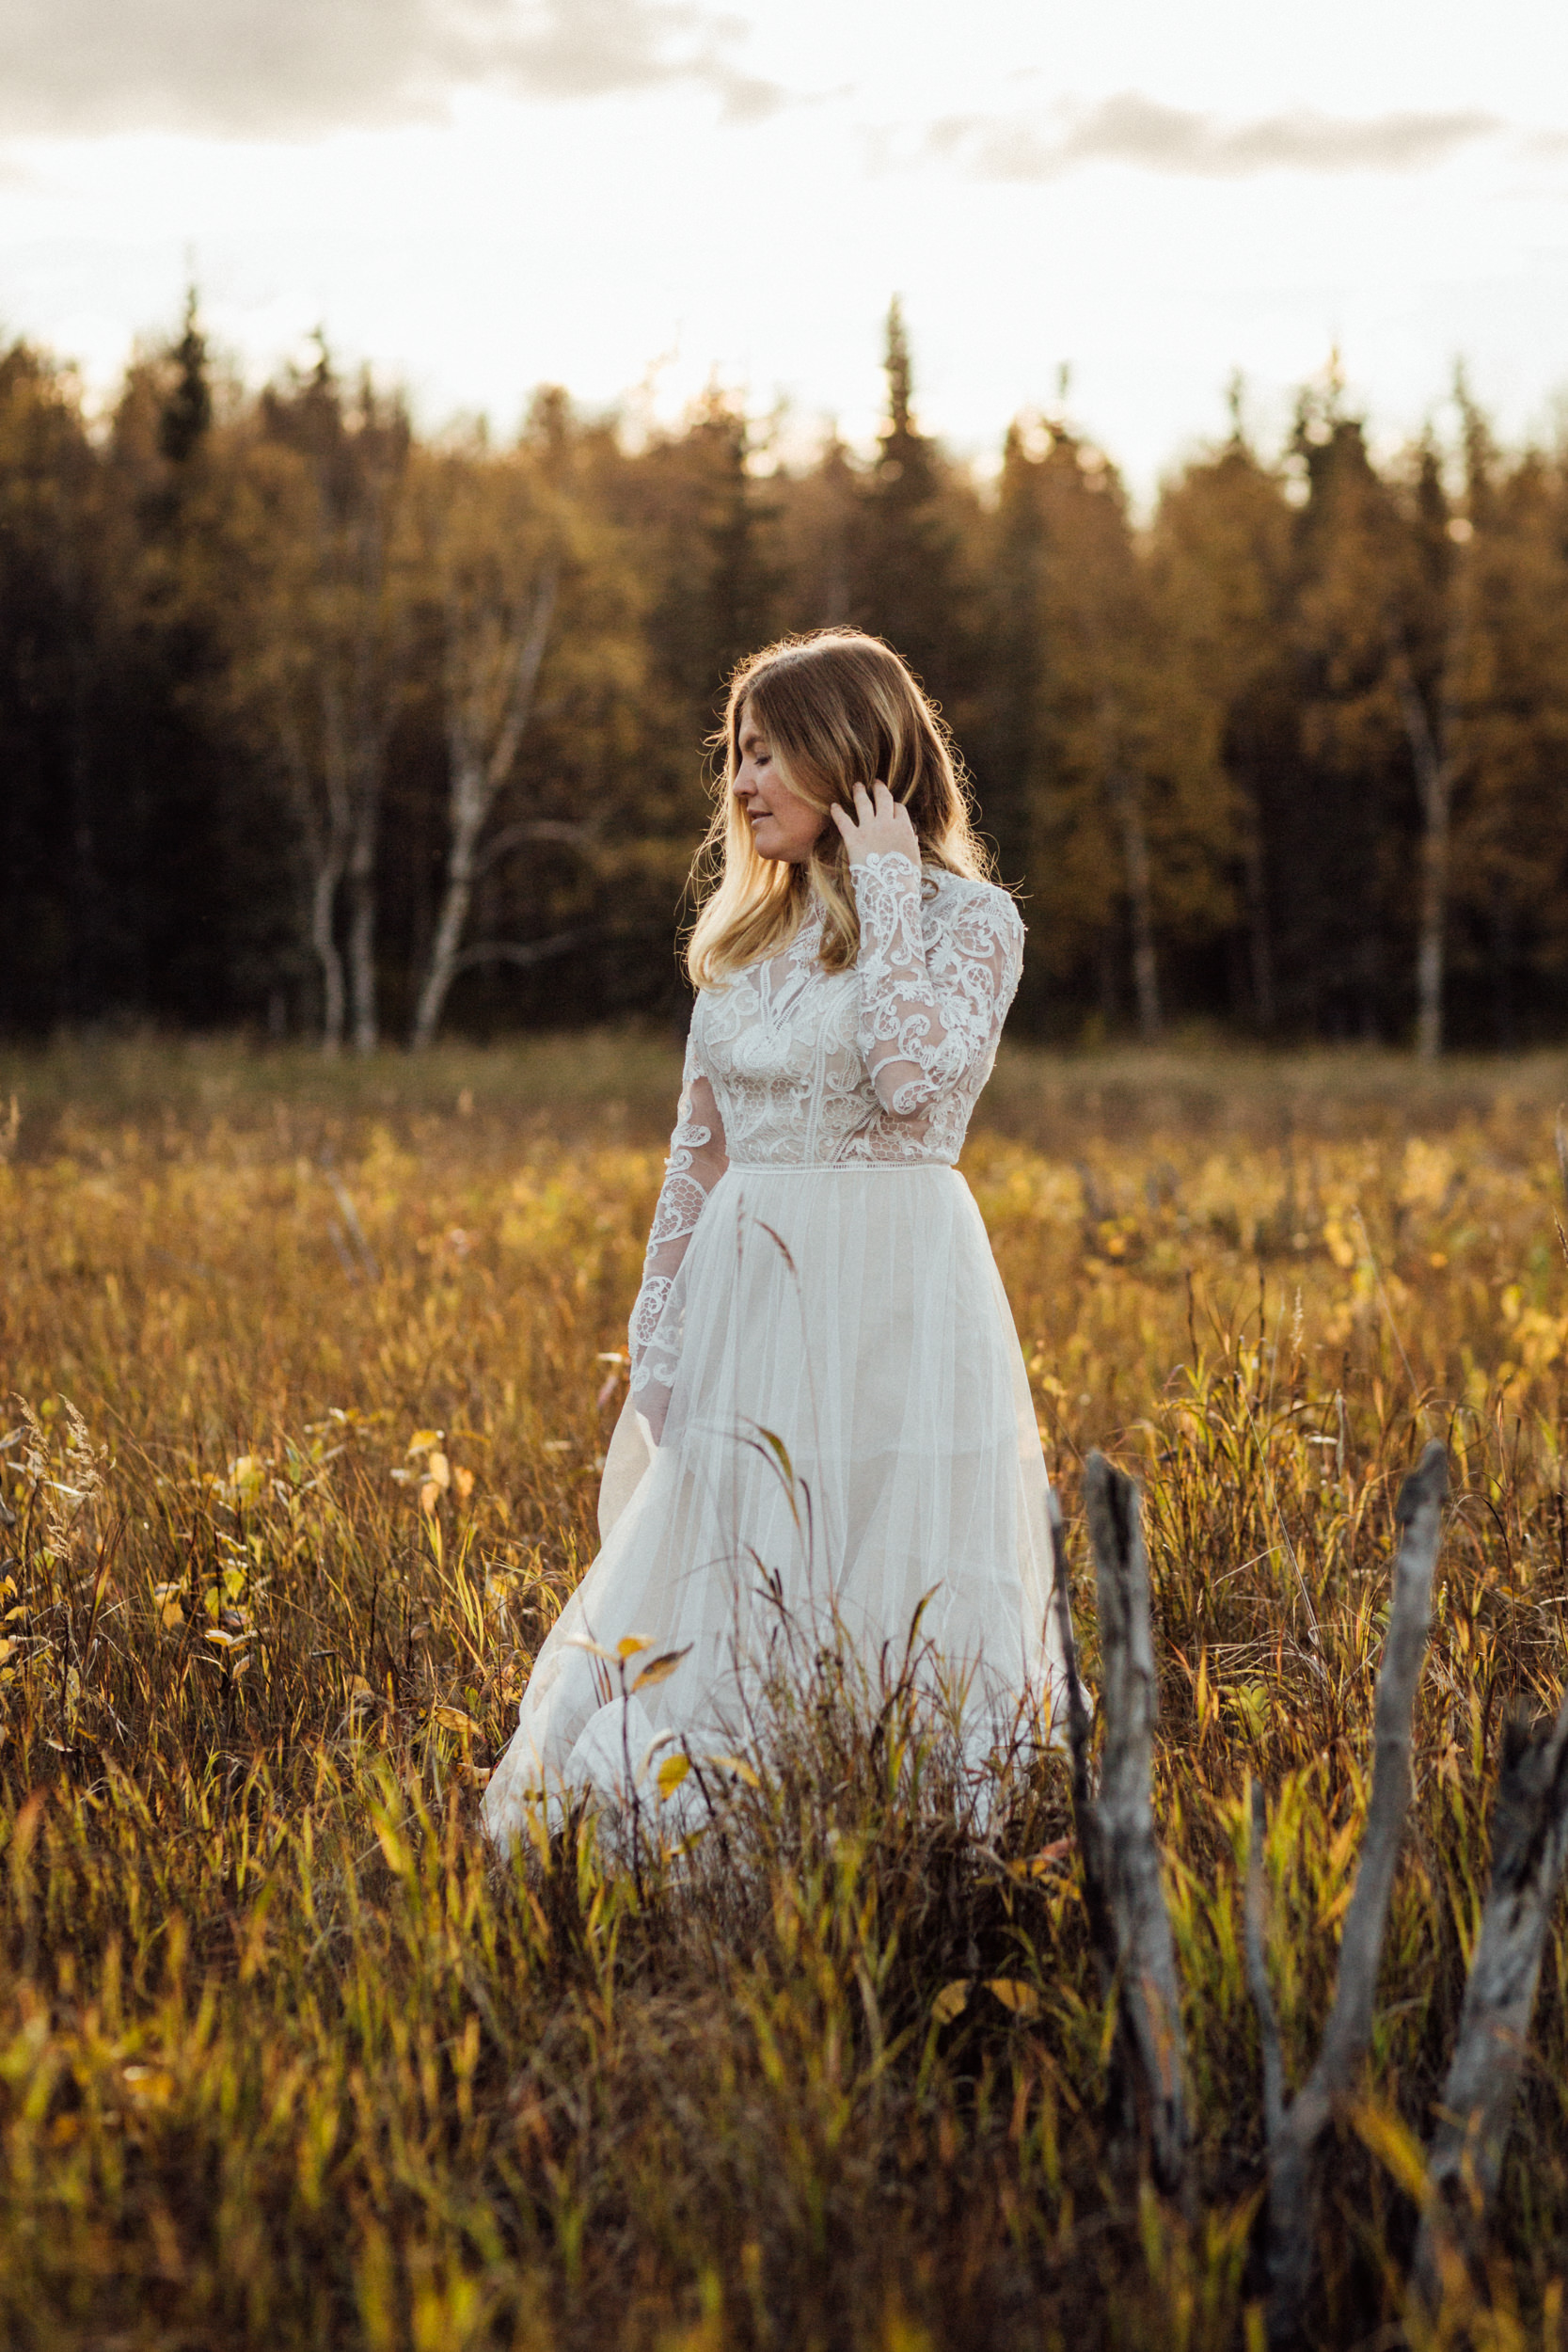 Autumn bride in golden sunset